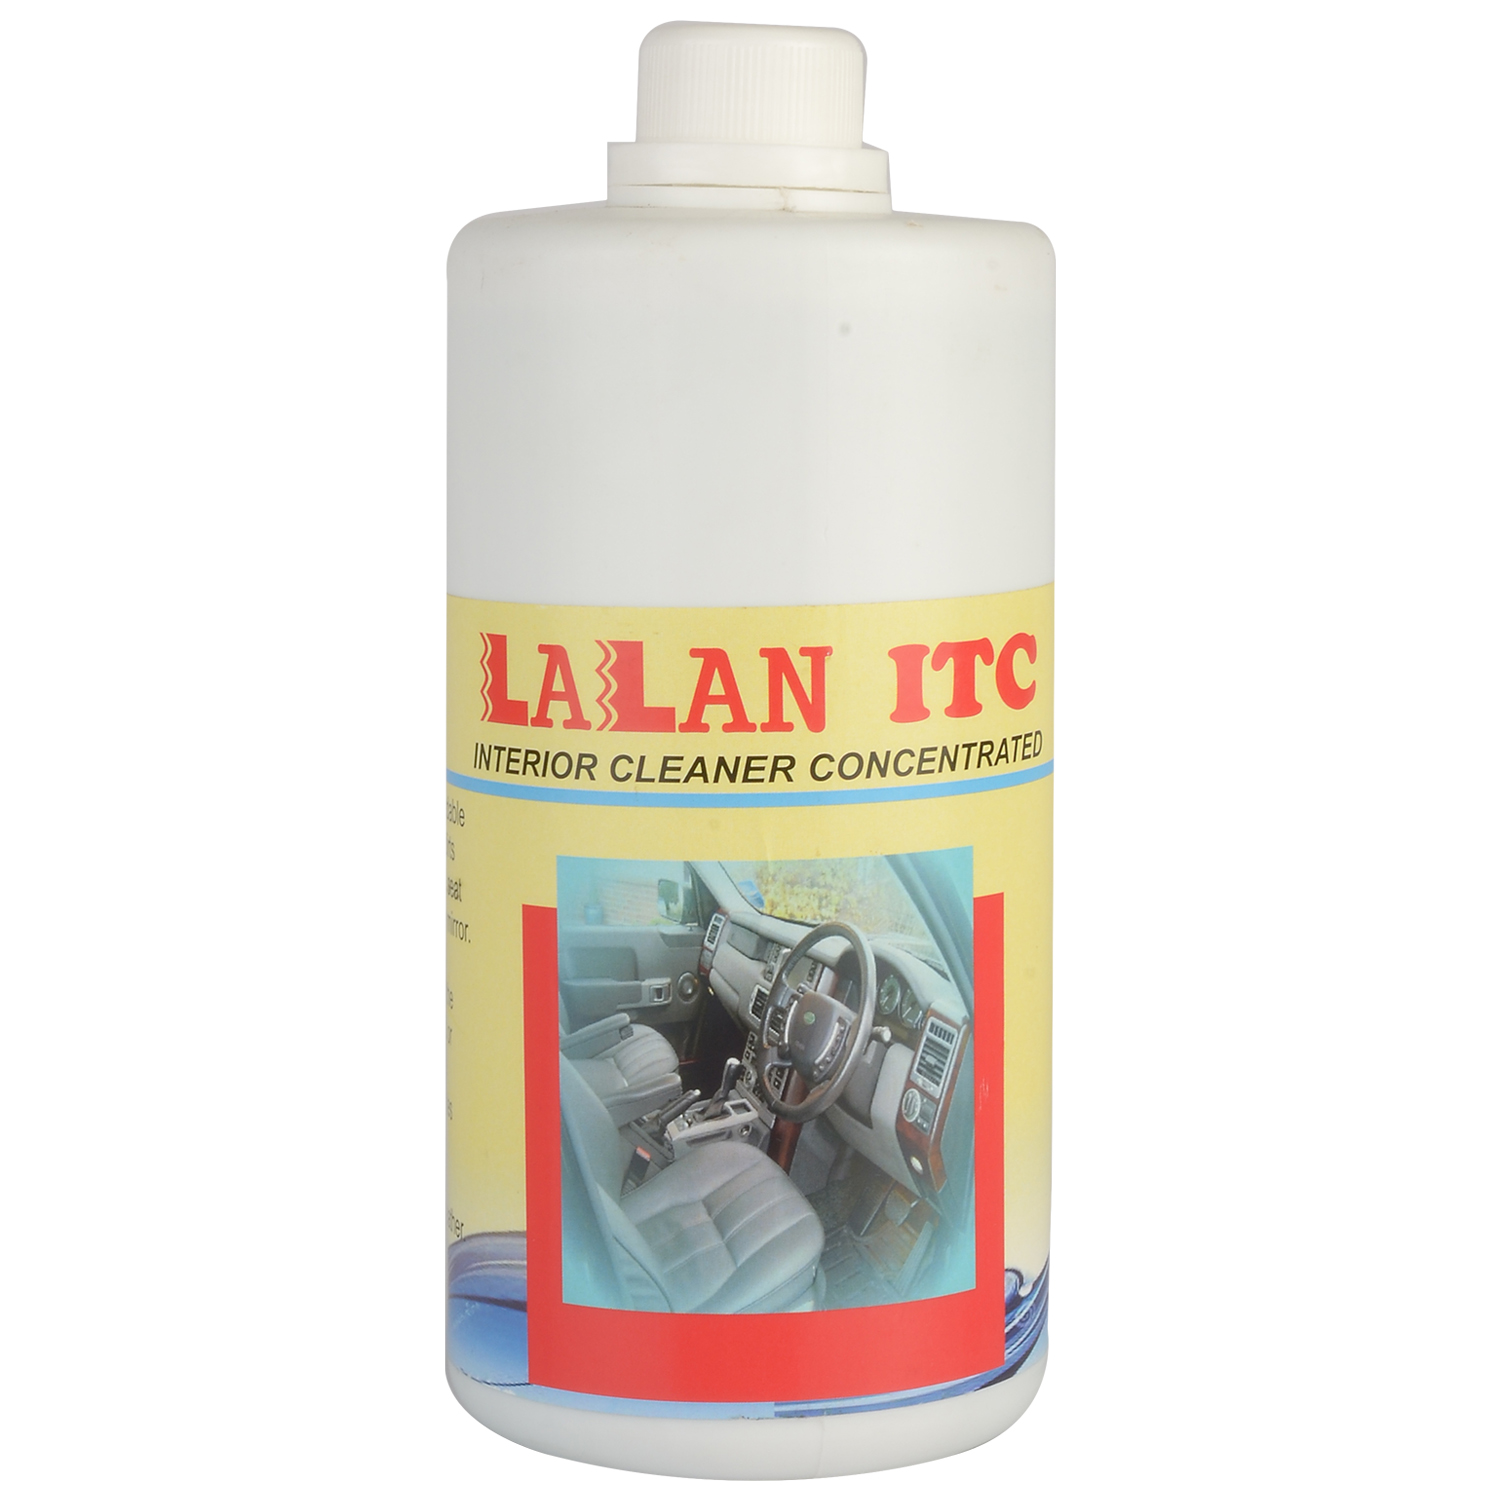 lalan itc concentrated interior cleaner. Black Bedroom Furniture Sets. Home Design Ideas